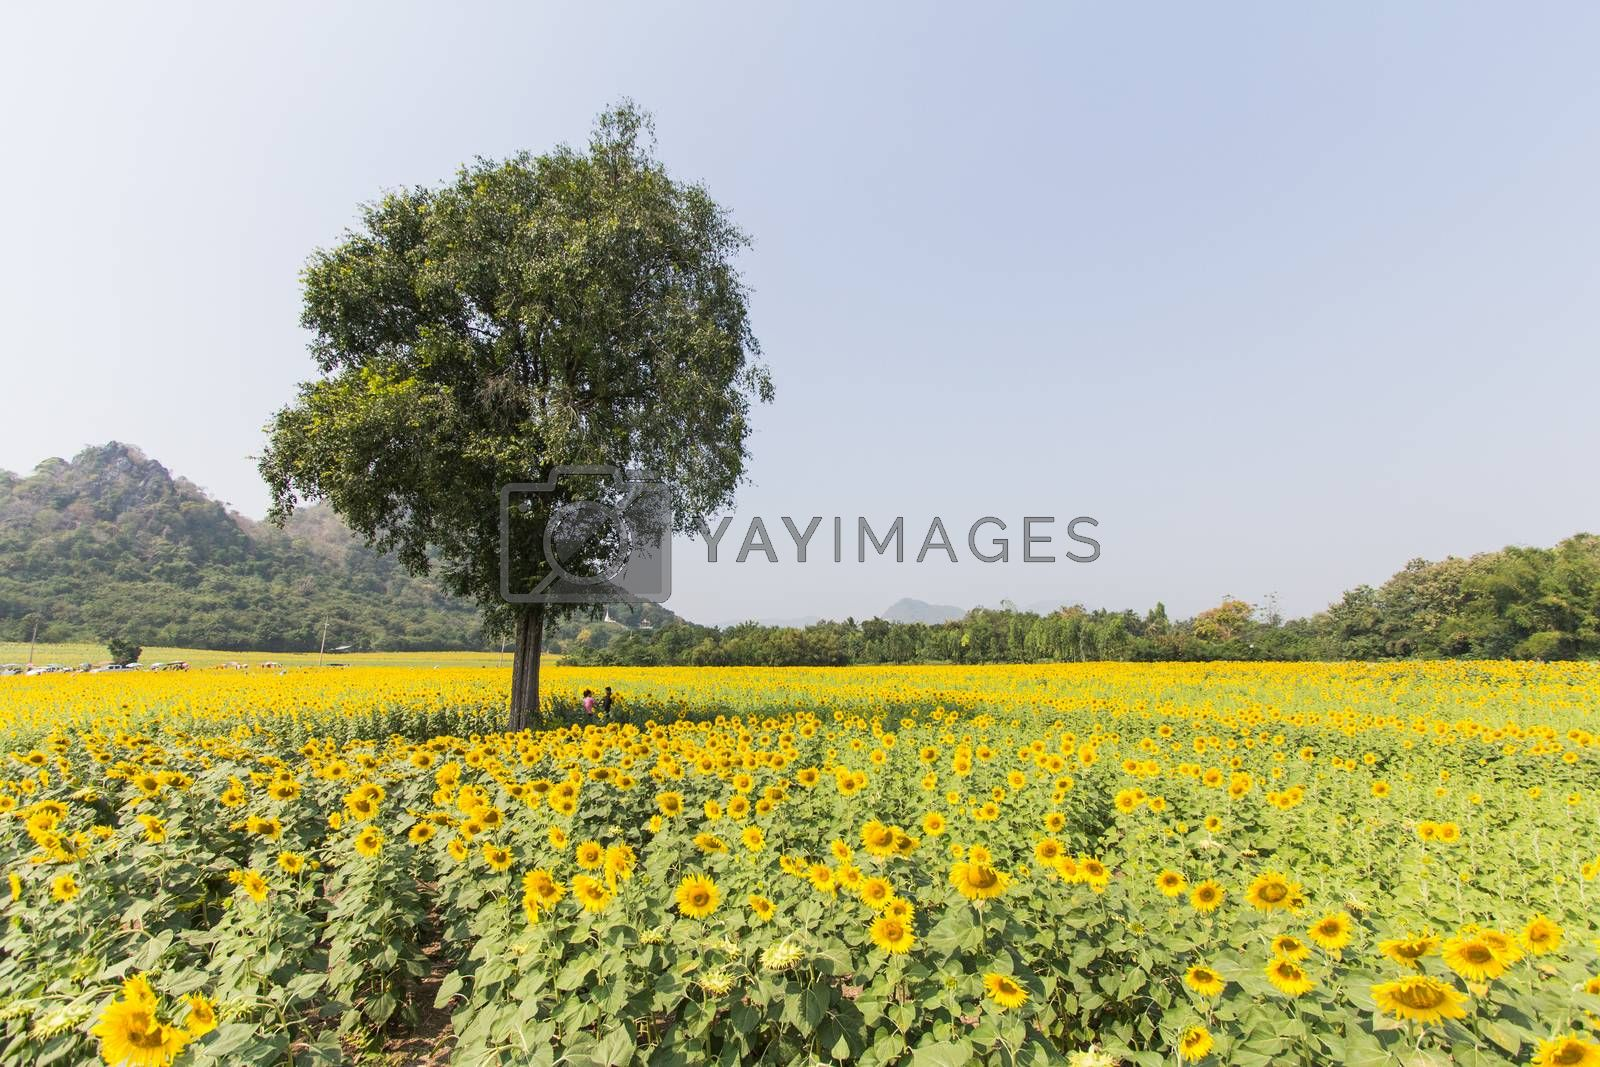 Royalty free image of sunflower field and tree in thailand by kritsada1992